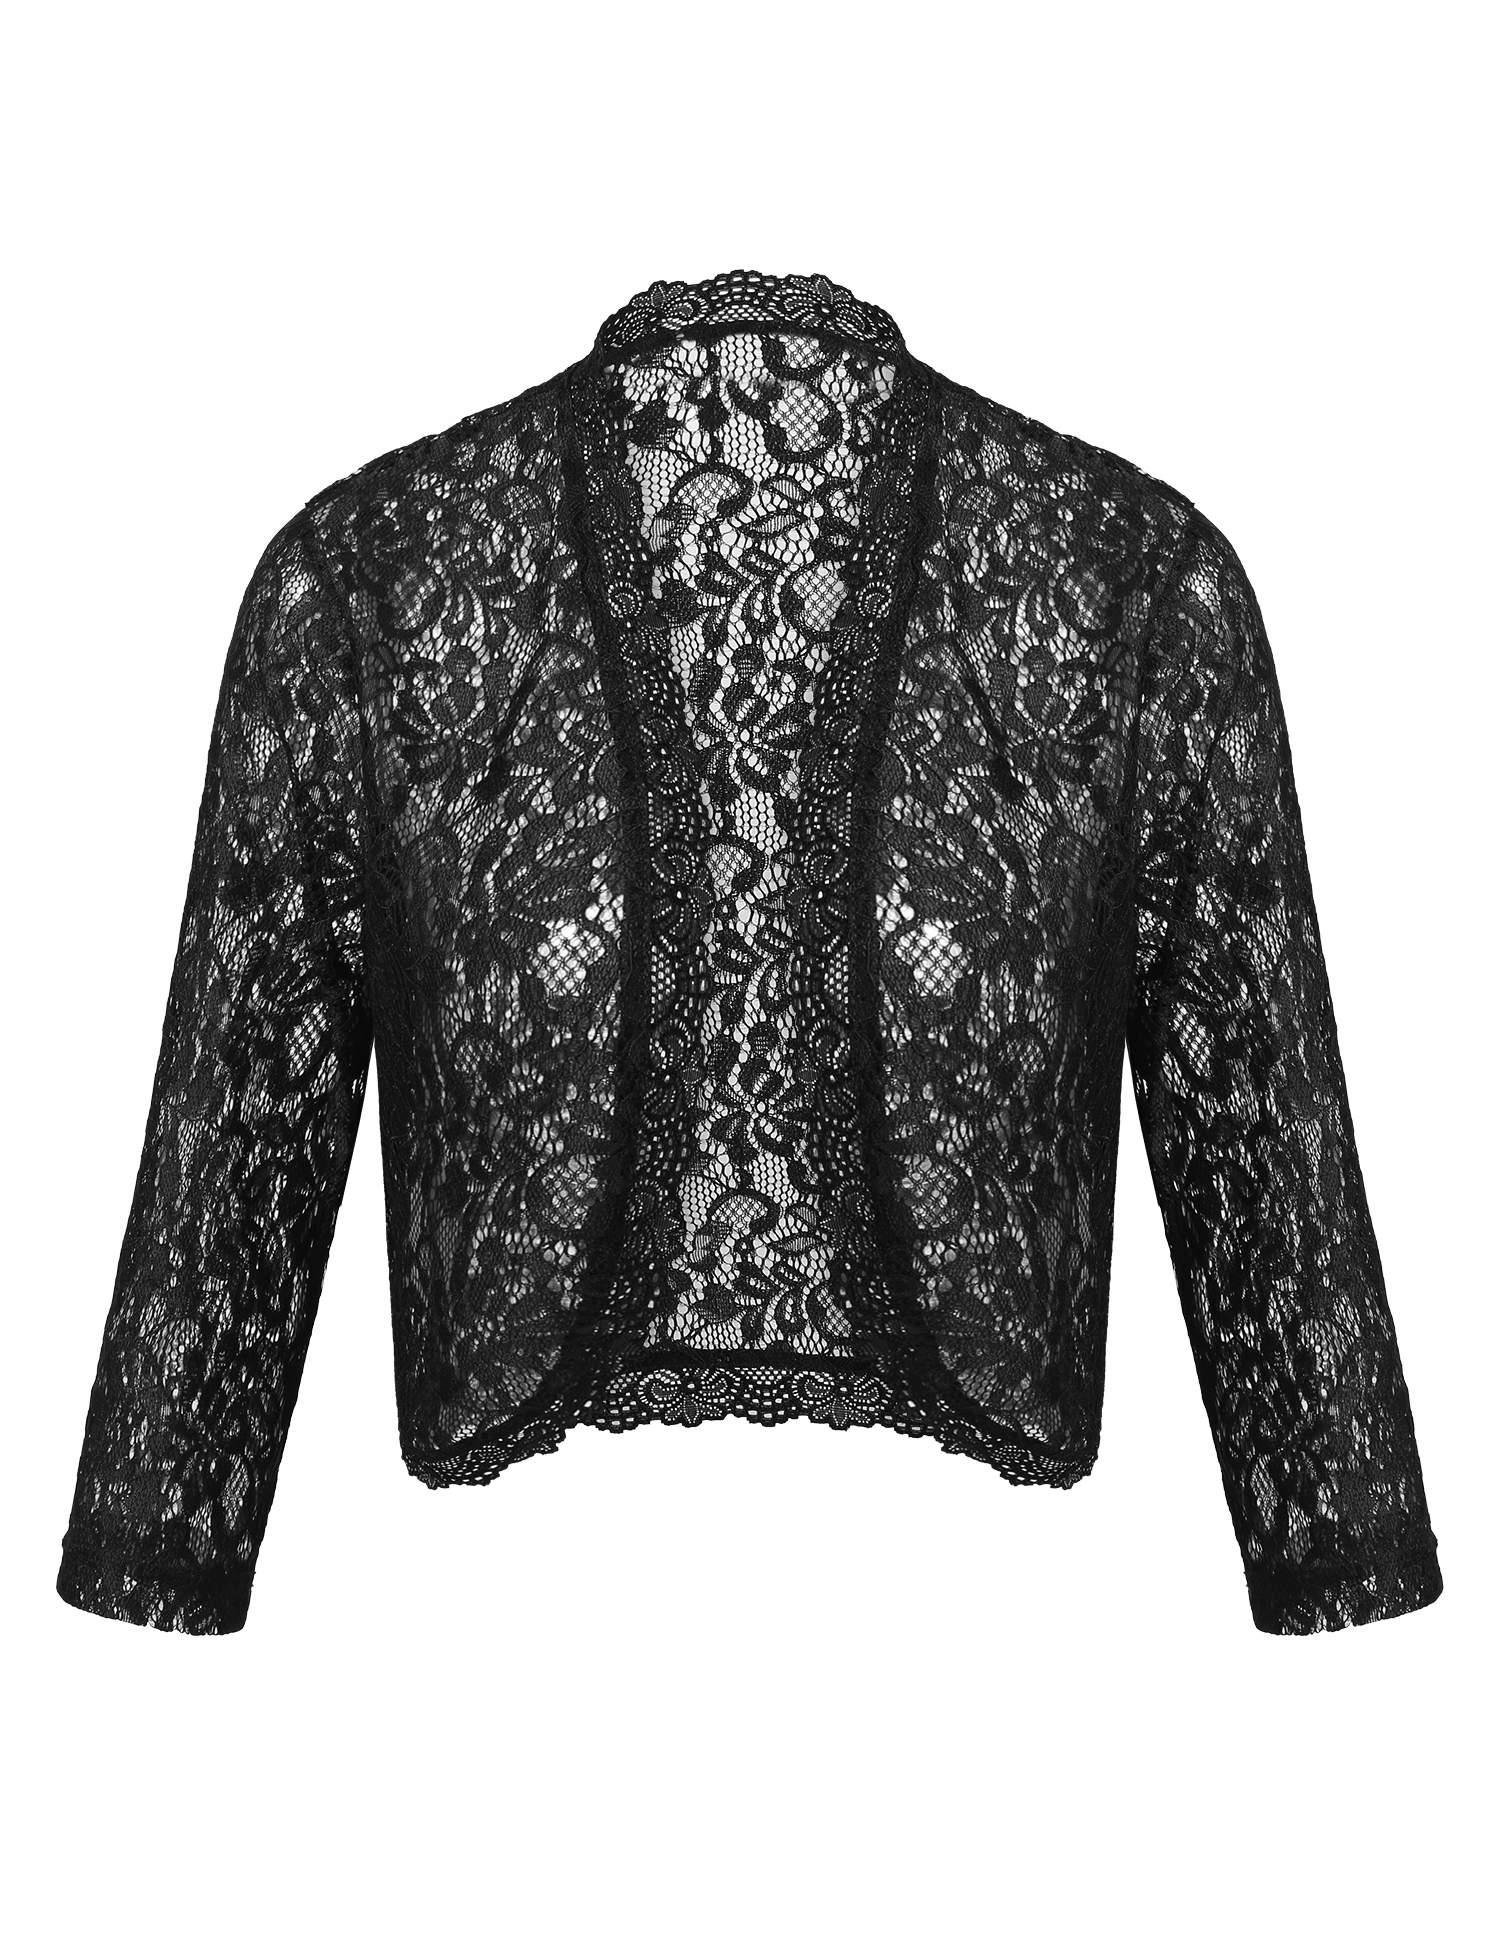 Dealwell Lace Bolero Shrug Women's Long Sleeve Summer Cropped Cardigans for Dresses (Black, L)